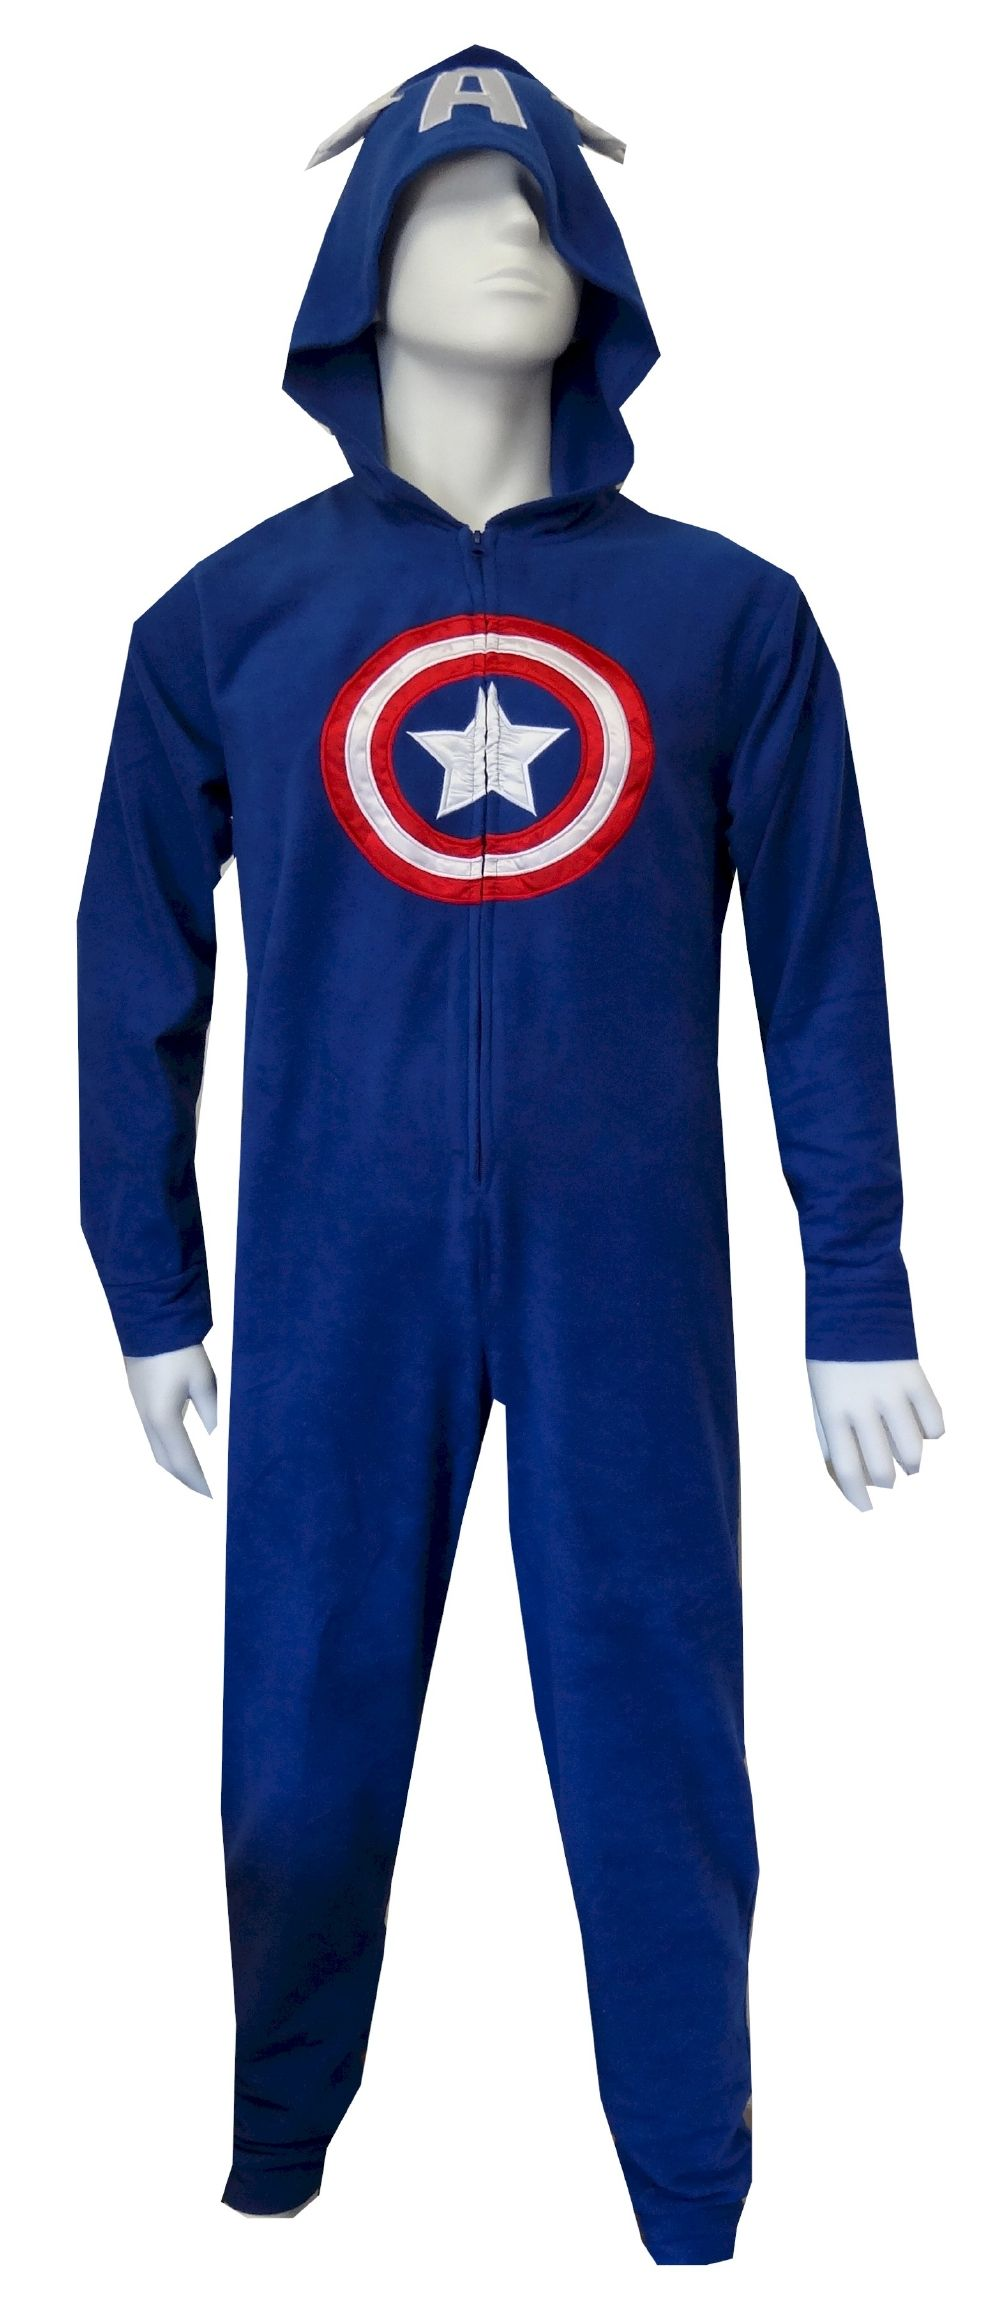 a02c006c05d1 Marvel Comics Captain America Hooded Fleece Onesie Pajama Conquer the  evil-doers in the house in these super fun pajamas! These pajamas for  adults feature ...